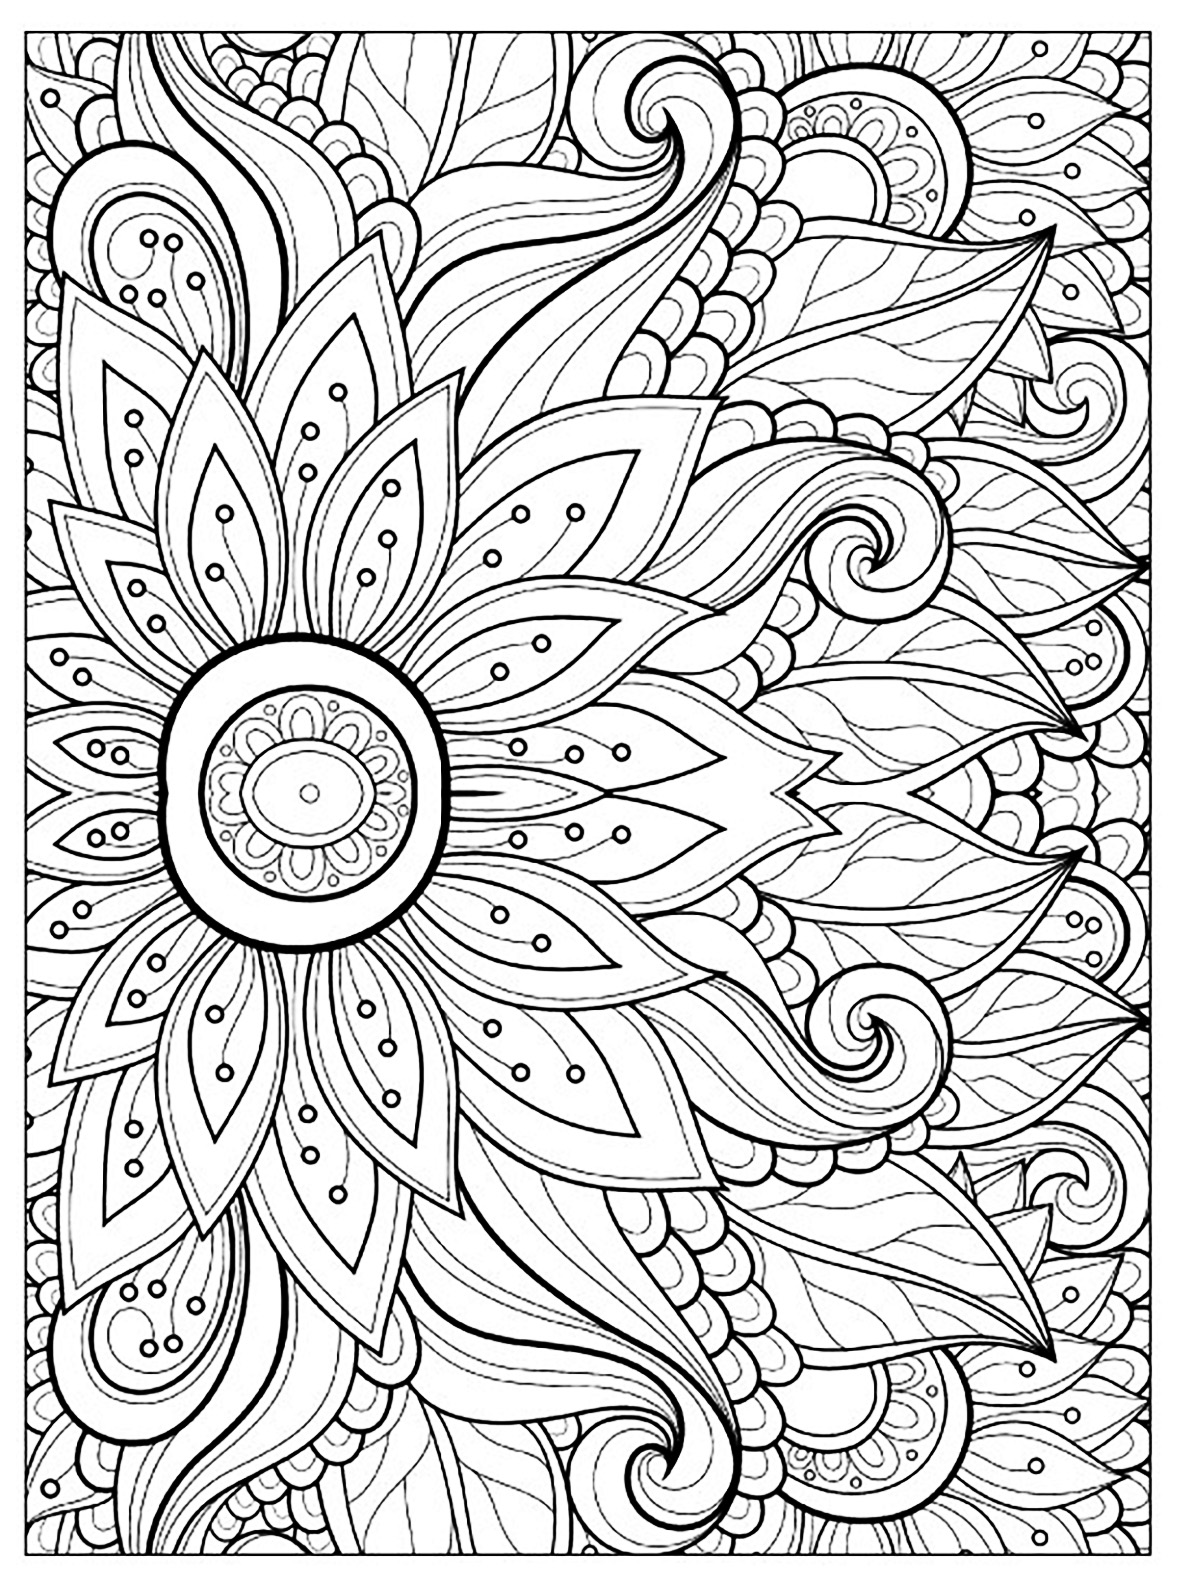 coloring books for adults flowers 10 floral adult coloring pages the graphics fairy books for adults flowers coloring